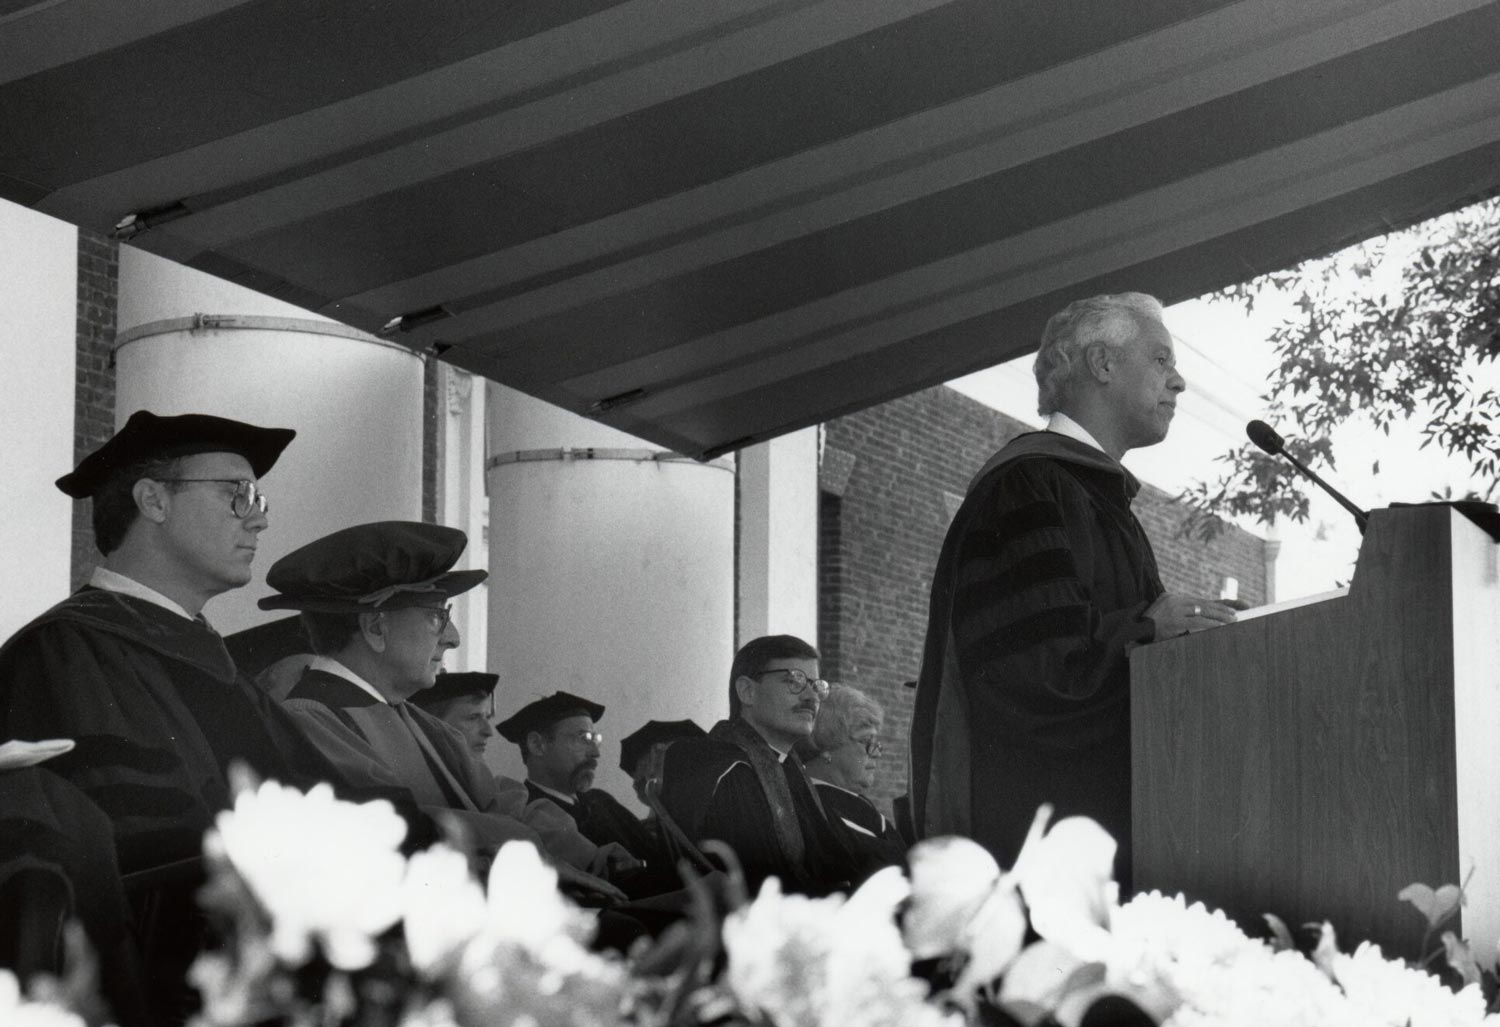 Then-Virginia Gov. L. Douglas Wilder speaks at the inauguration of John T. Casteen, who served as president of the University for 20 years.